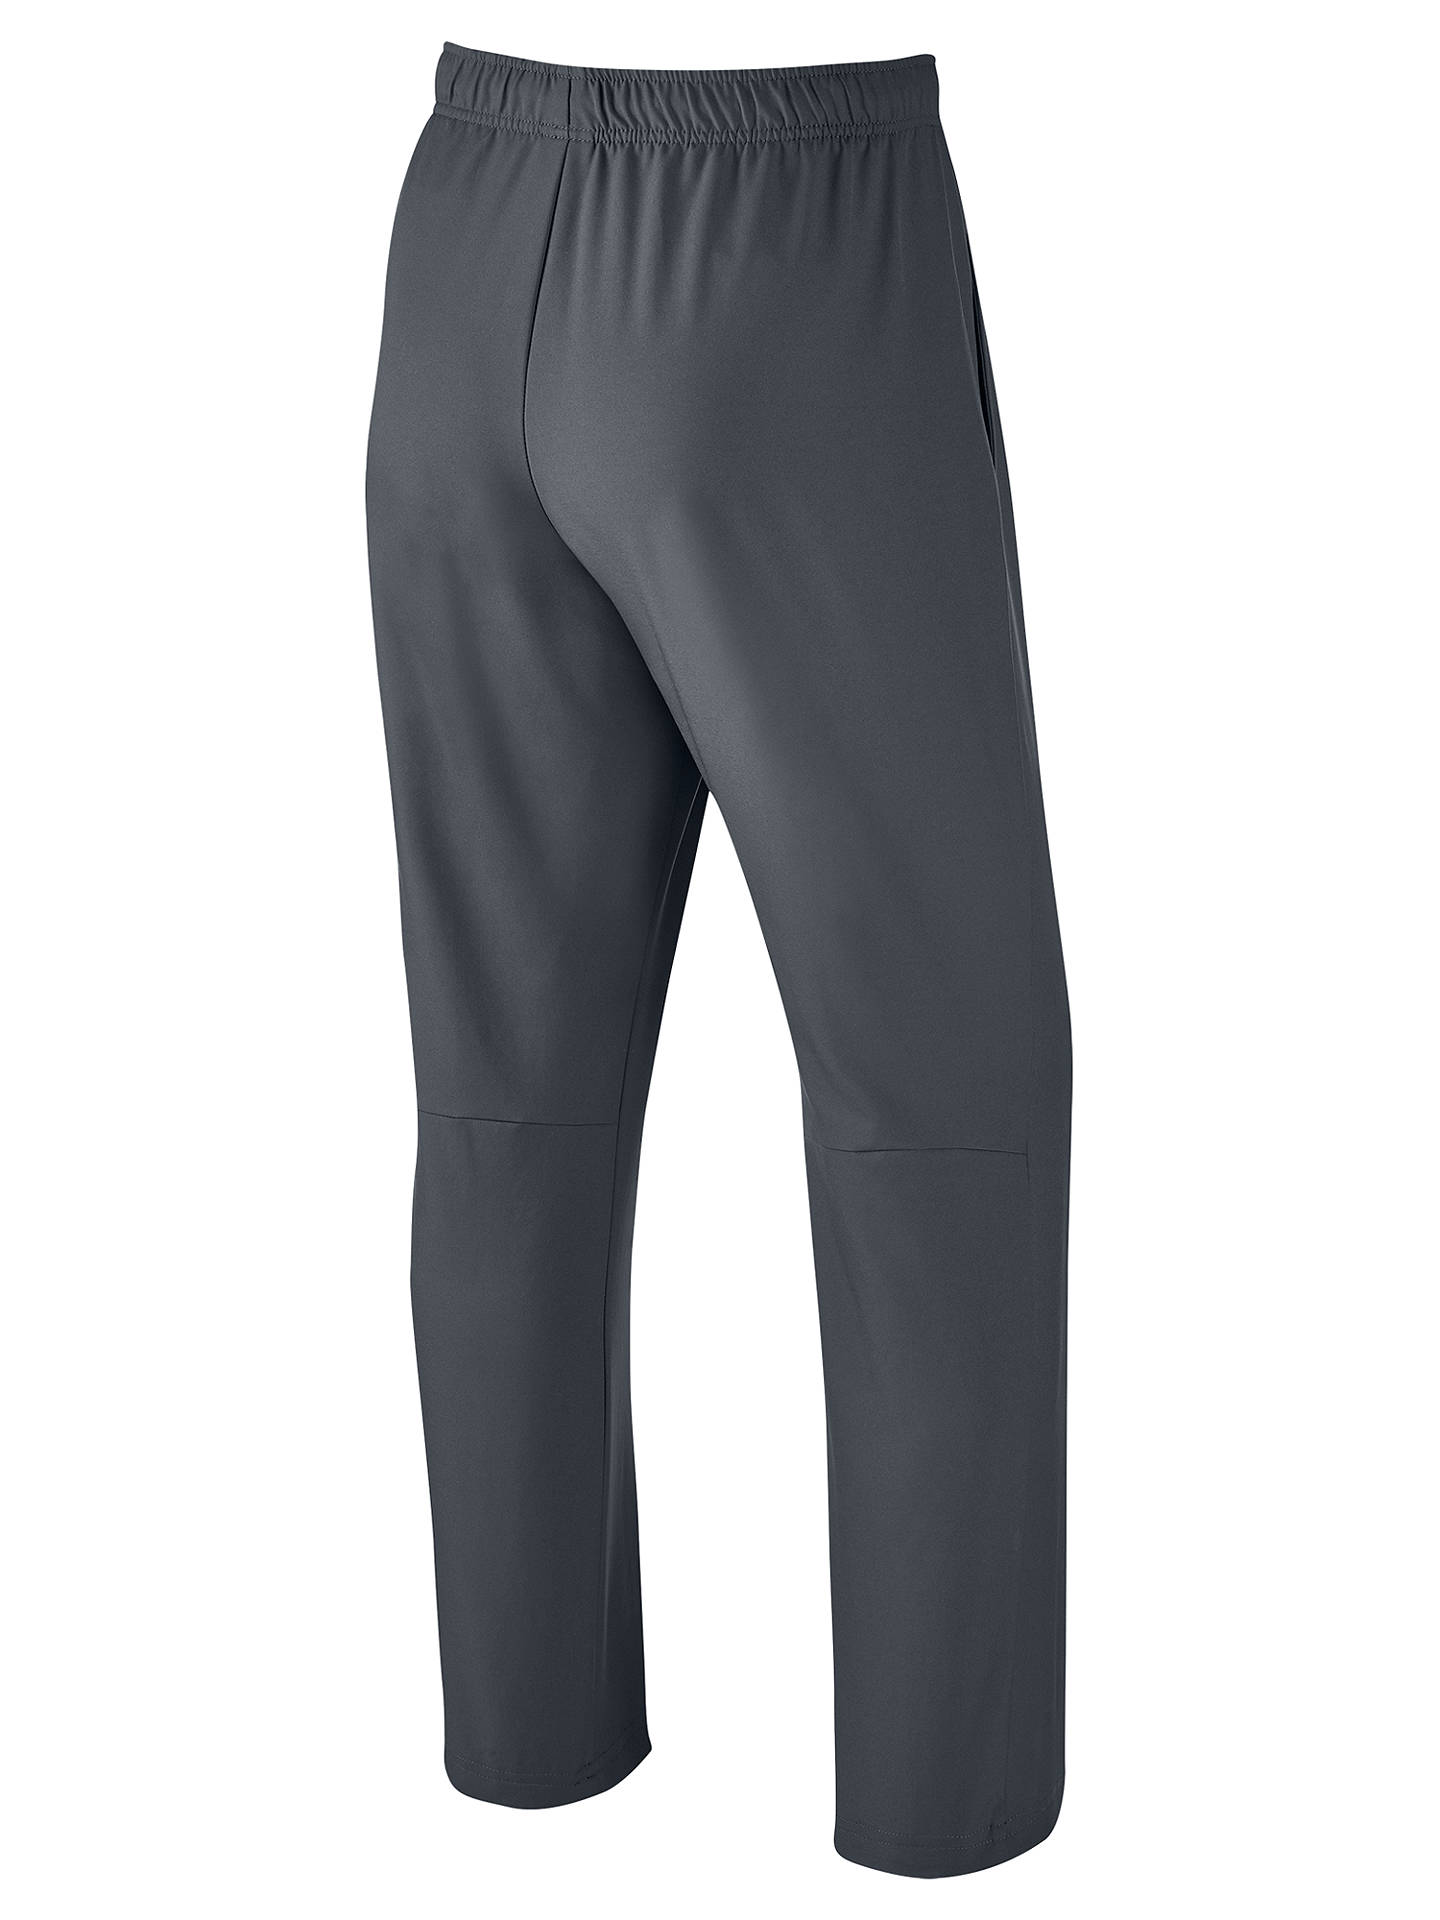 BuyNike Dry Team Tracksuit Bottoms, Grey/Black, S Online at johnlewis.com